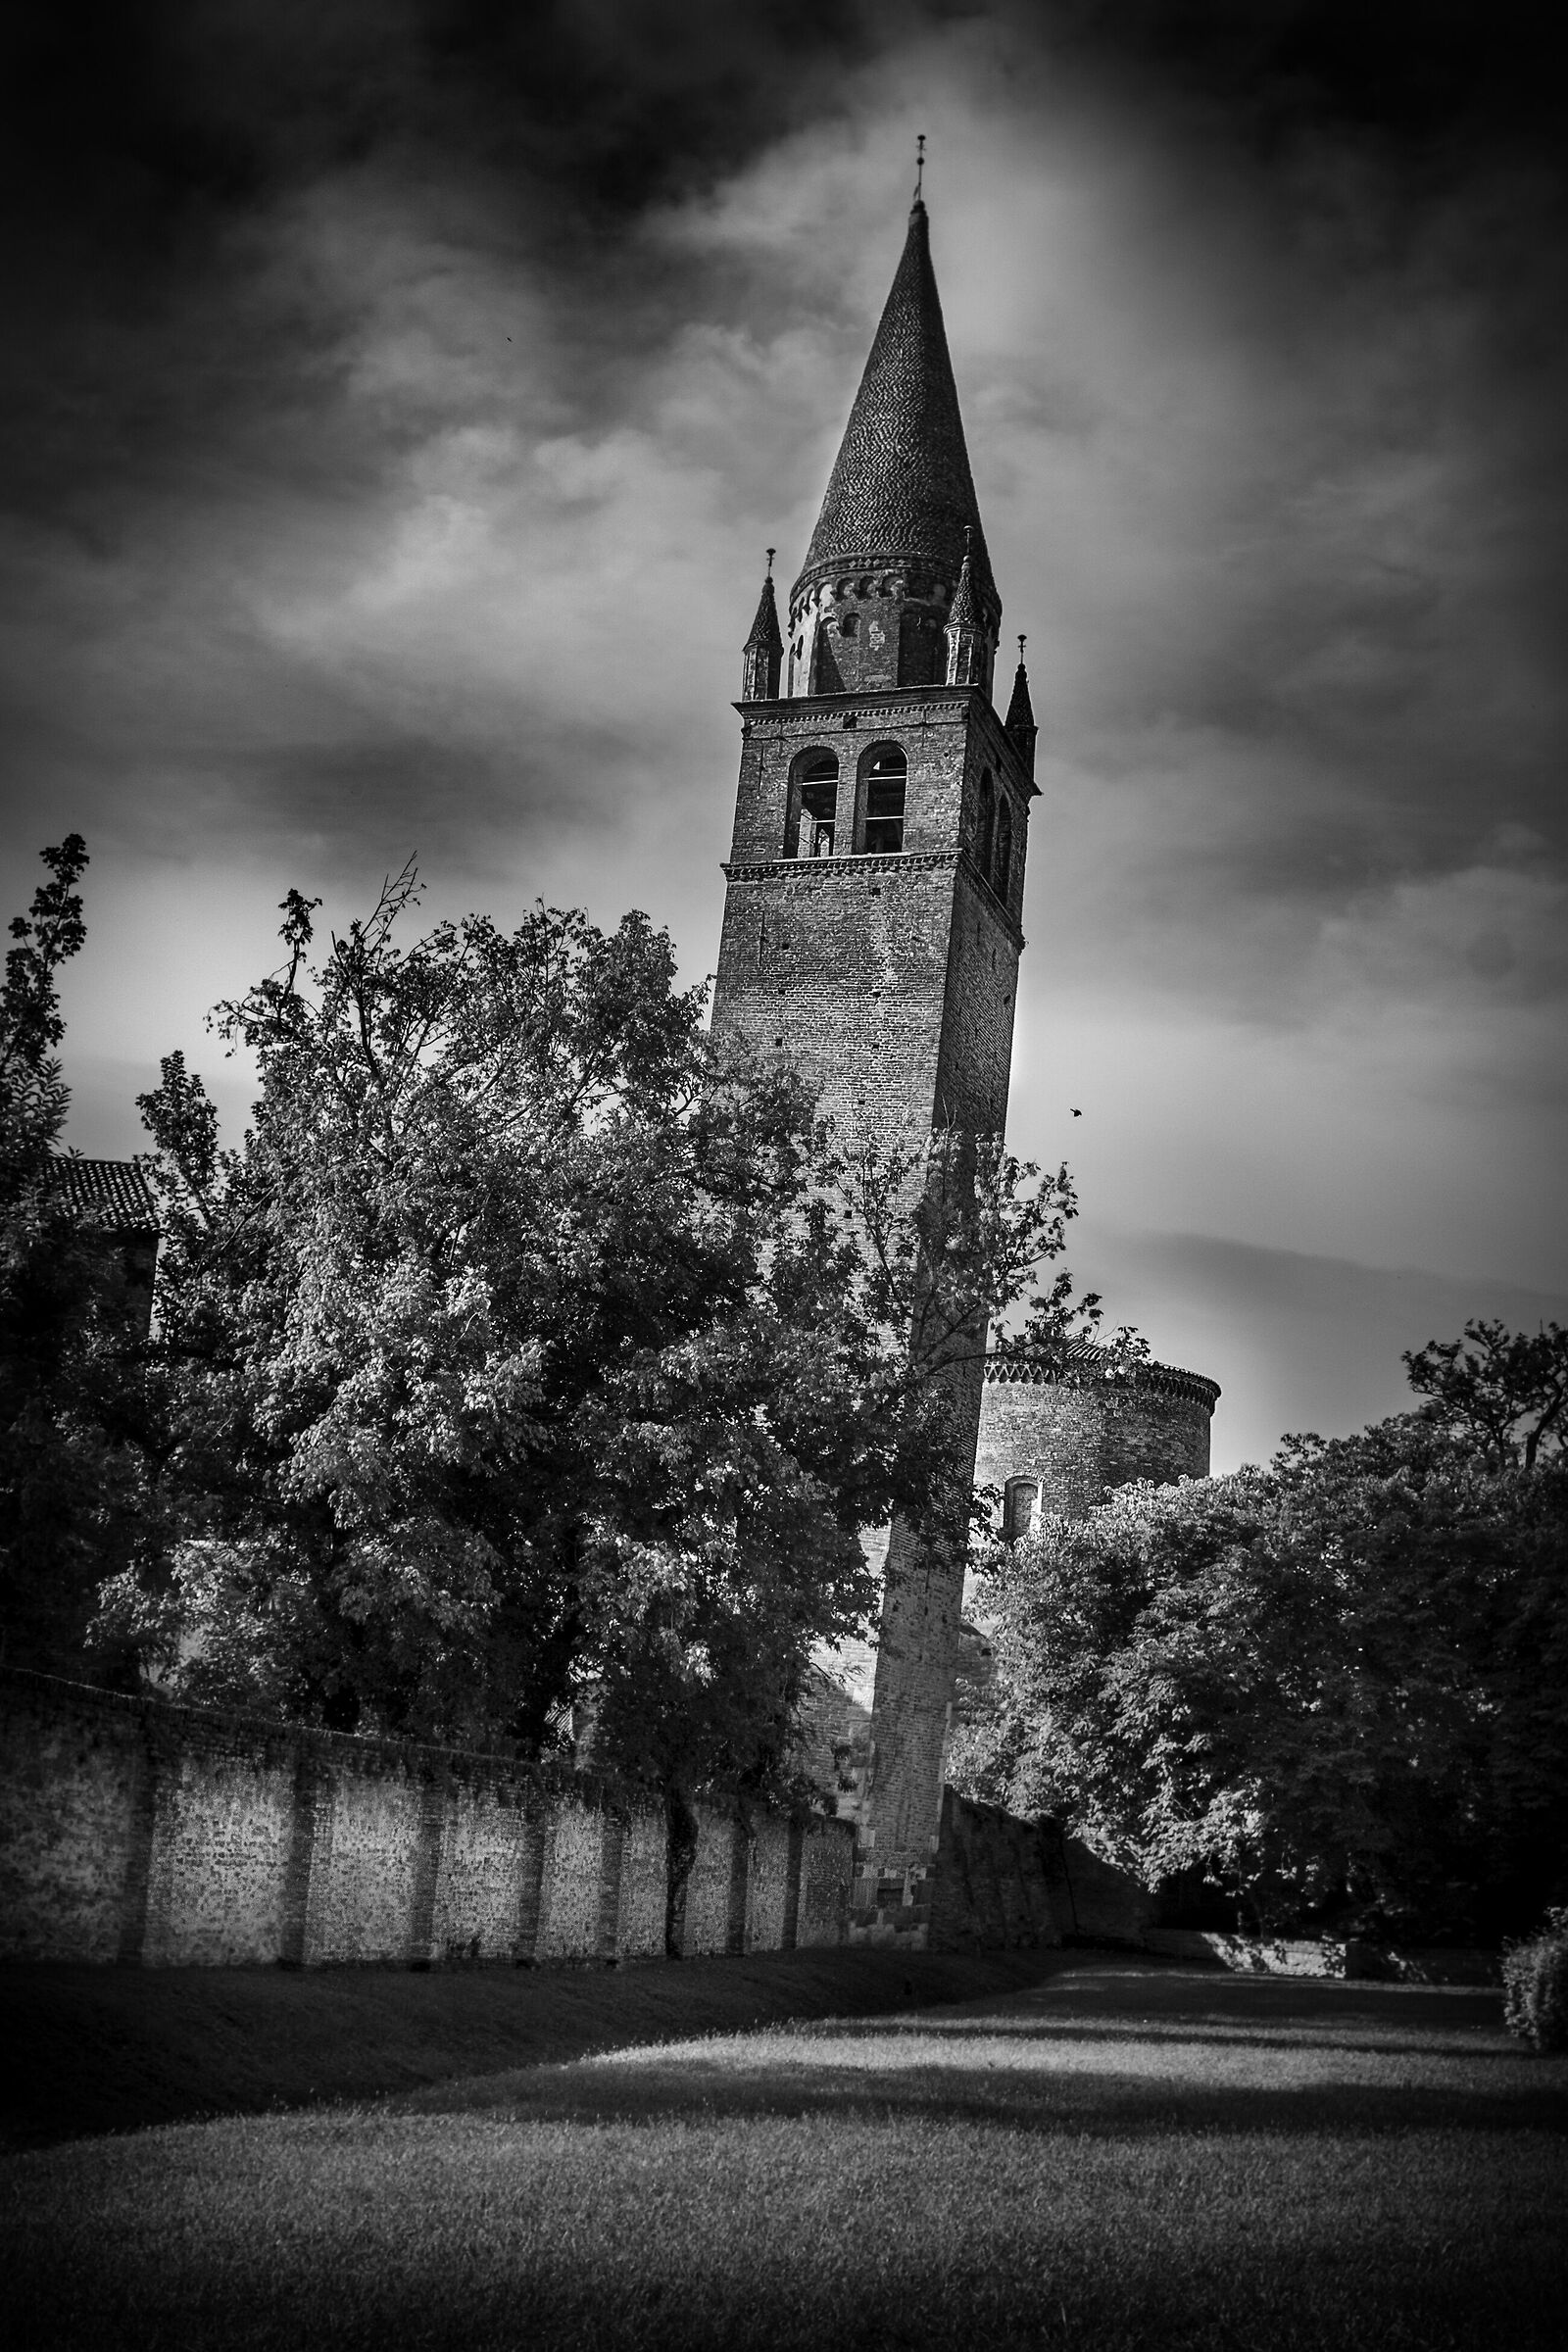 Crooked bell tower...